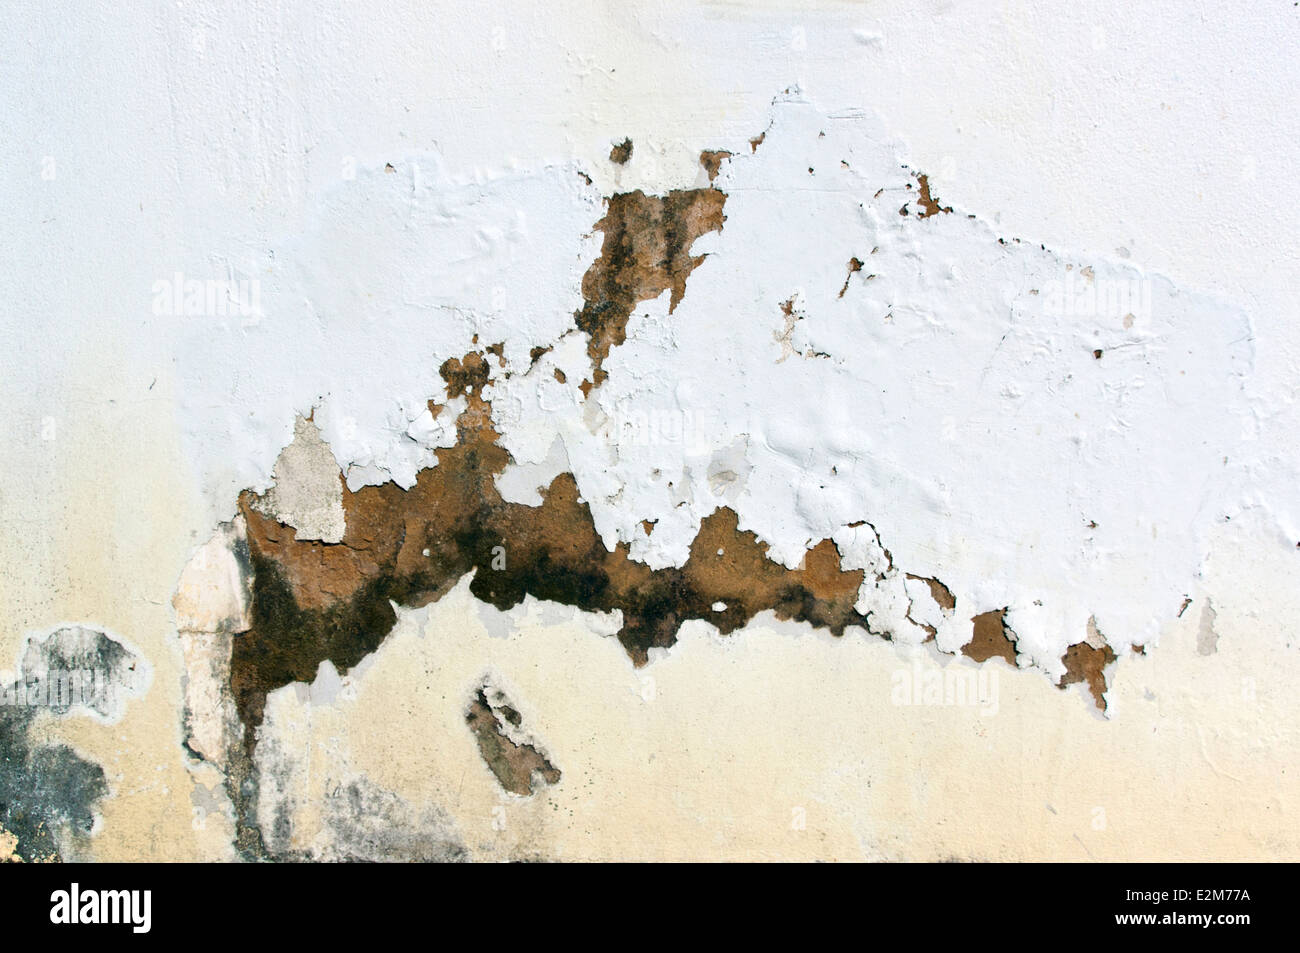 exterior wall with peeling paint indicating rising damp - Stock Image